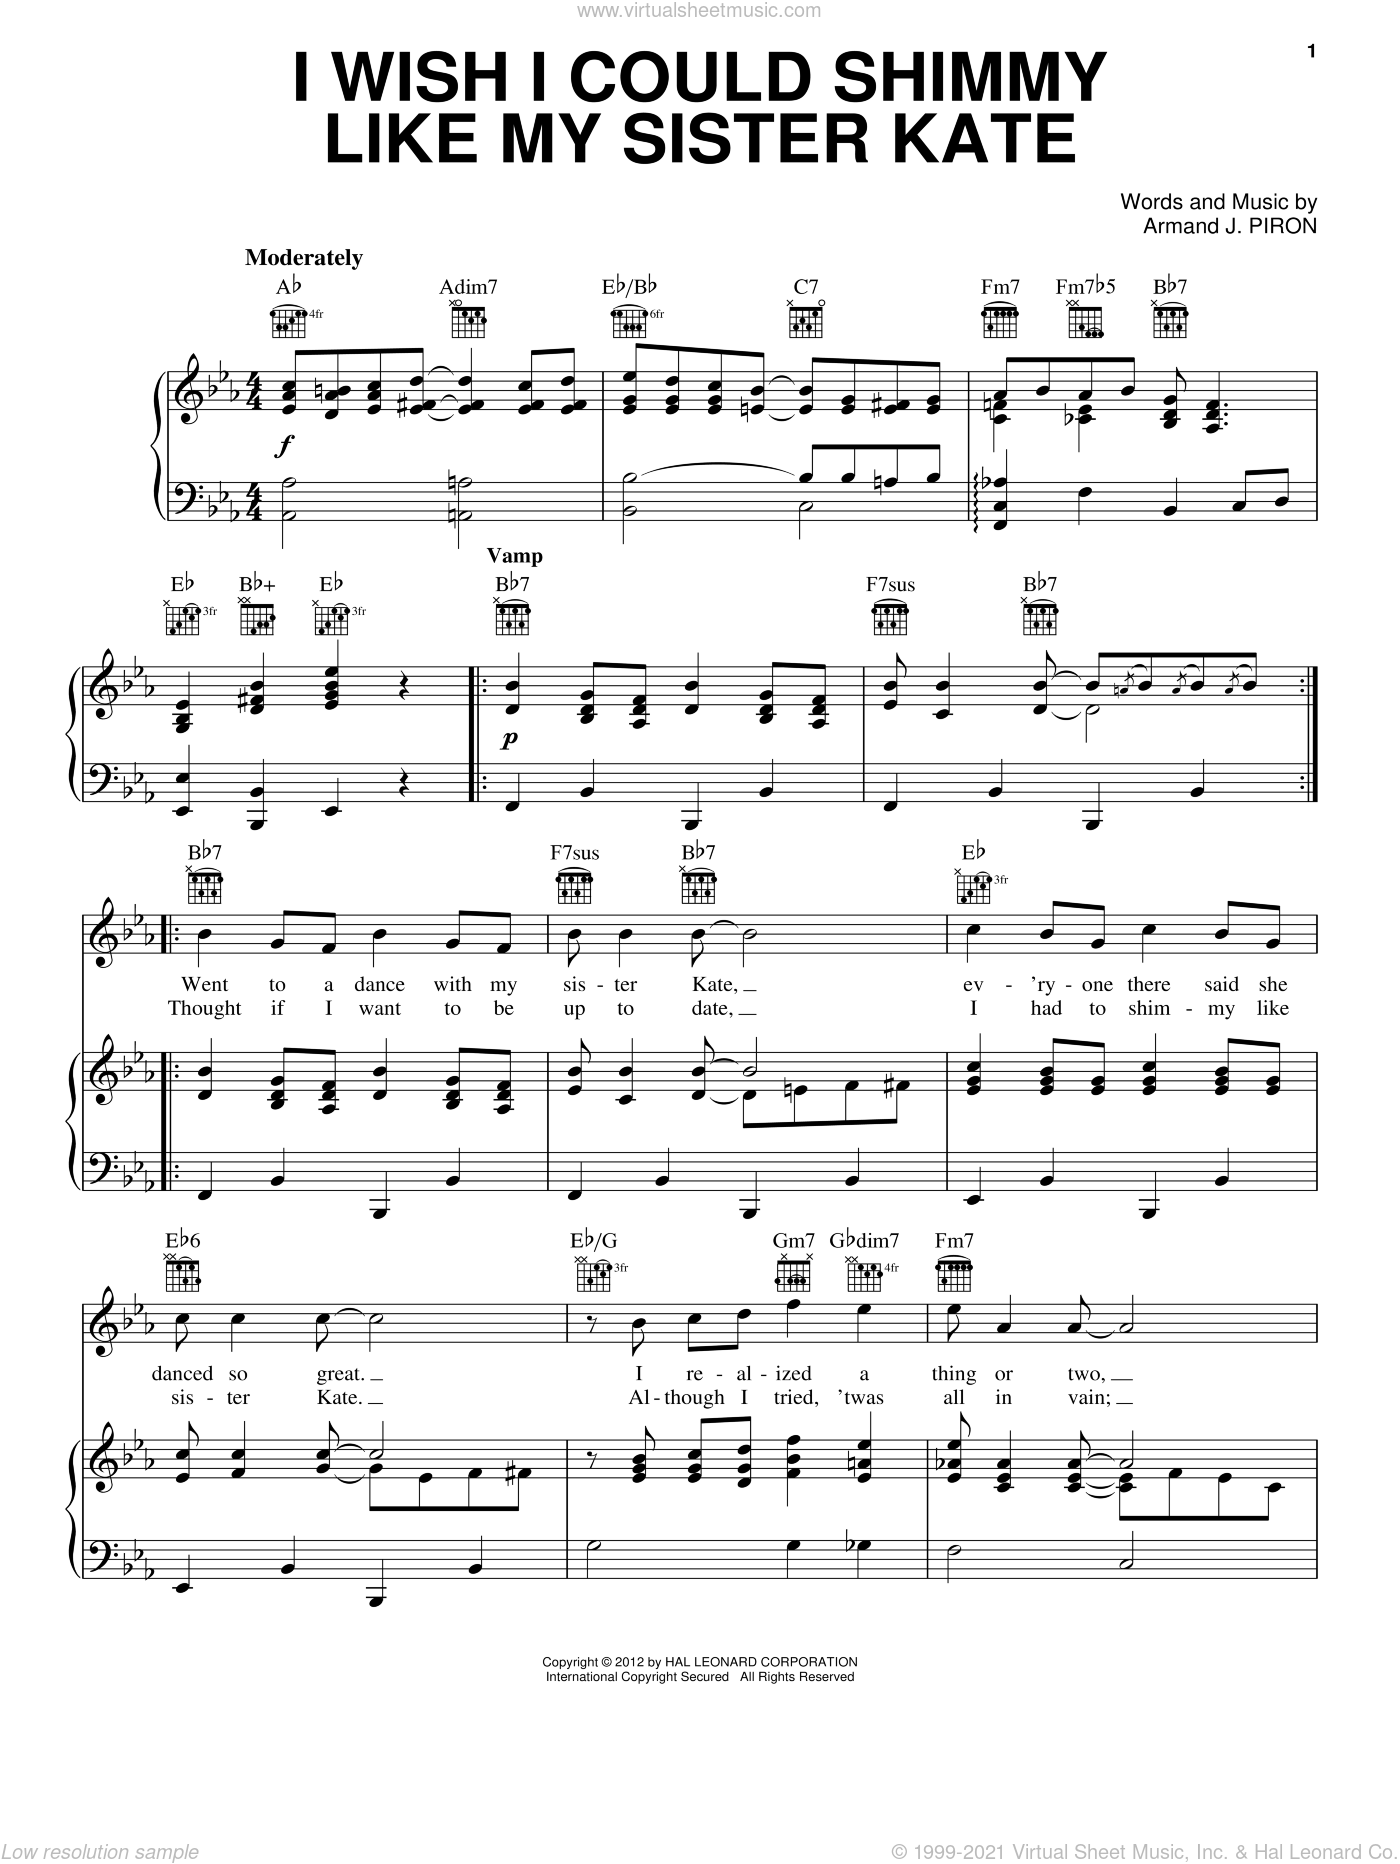 I Wish I Could Shimmy Like My Sister Kate sheet music for voice, piano or guitar by Armand J. Piron